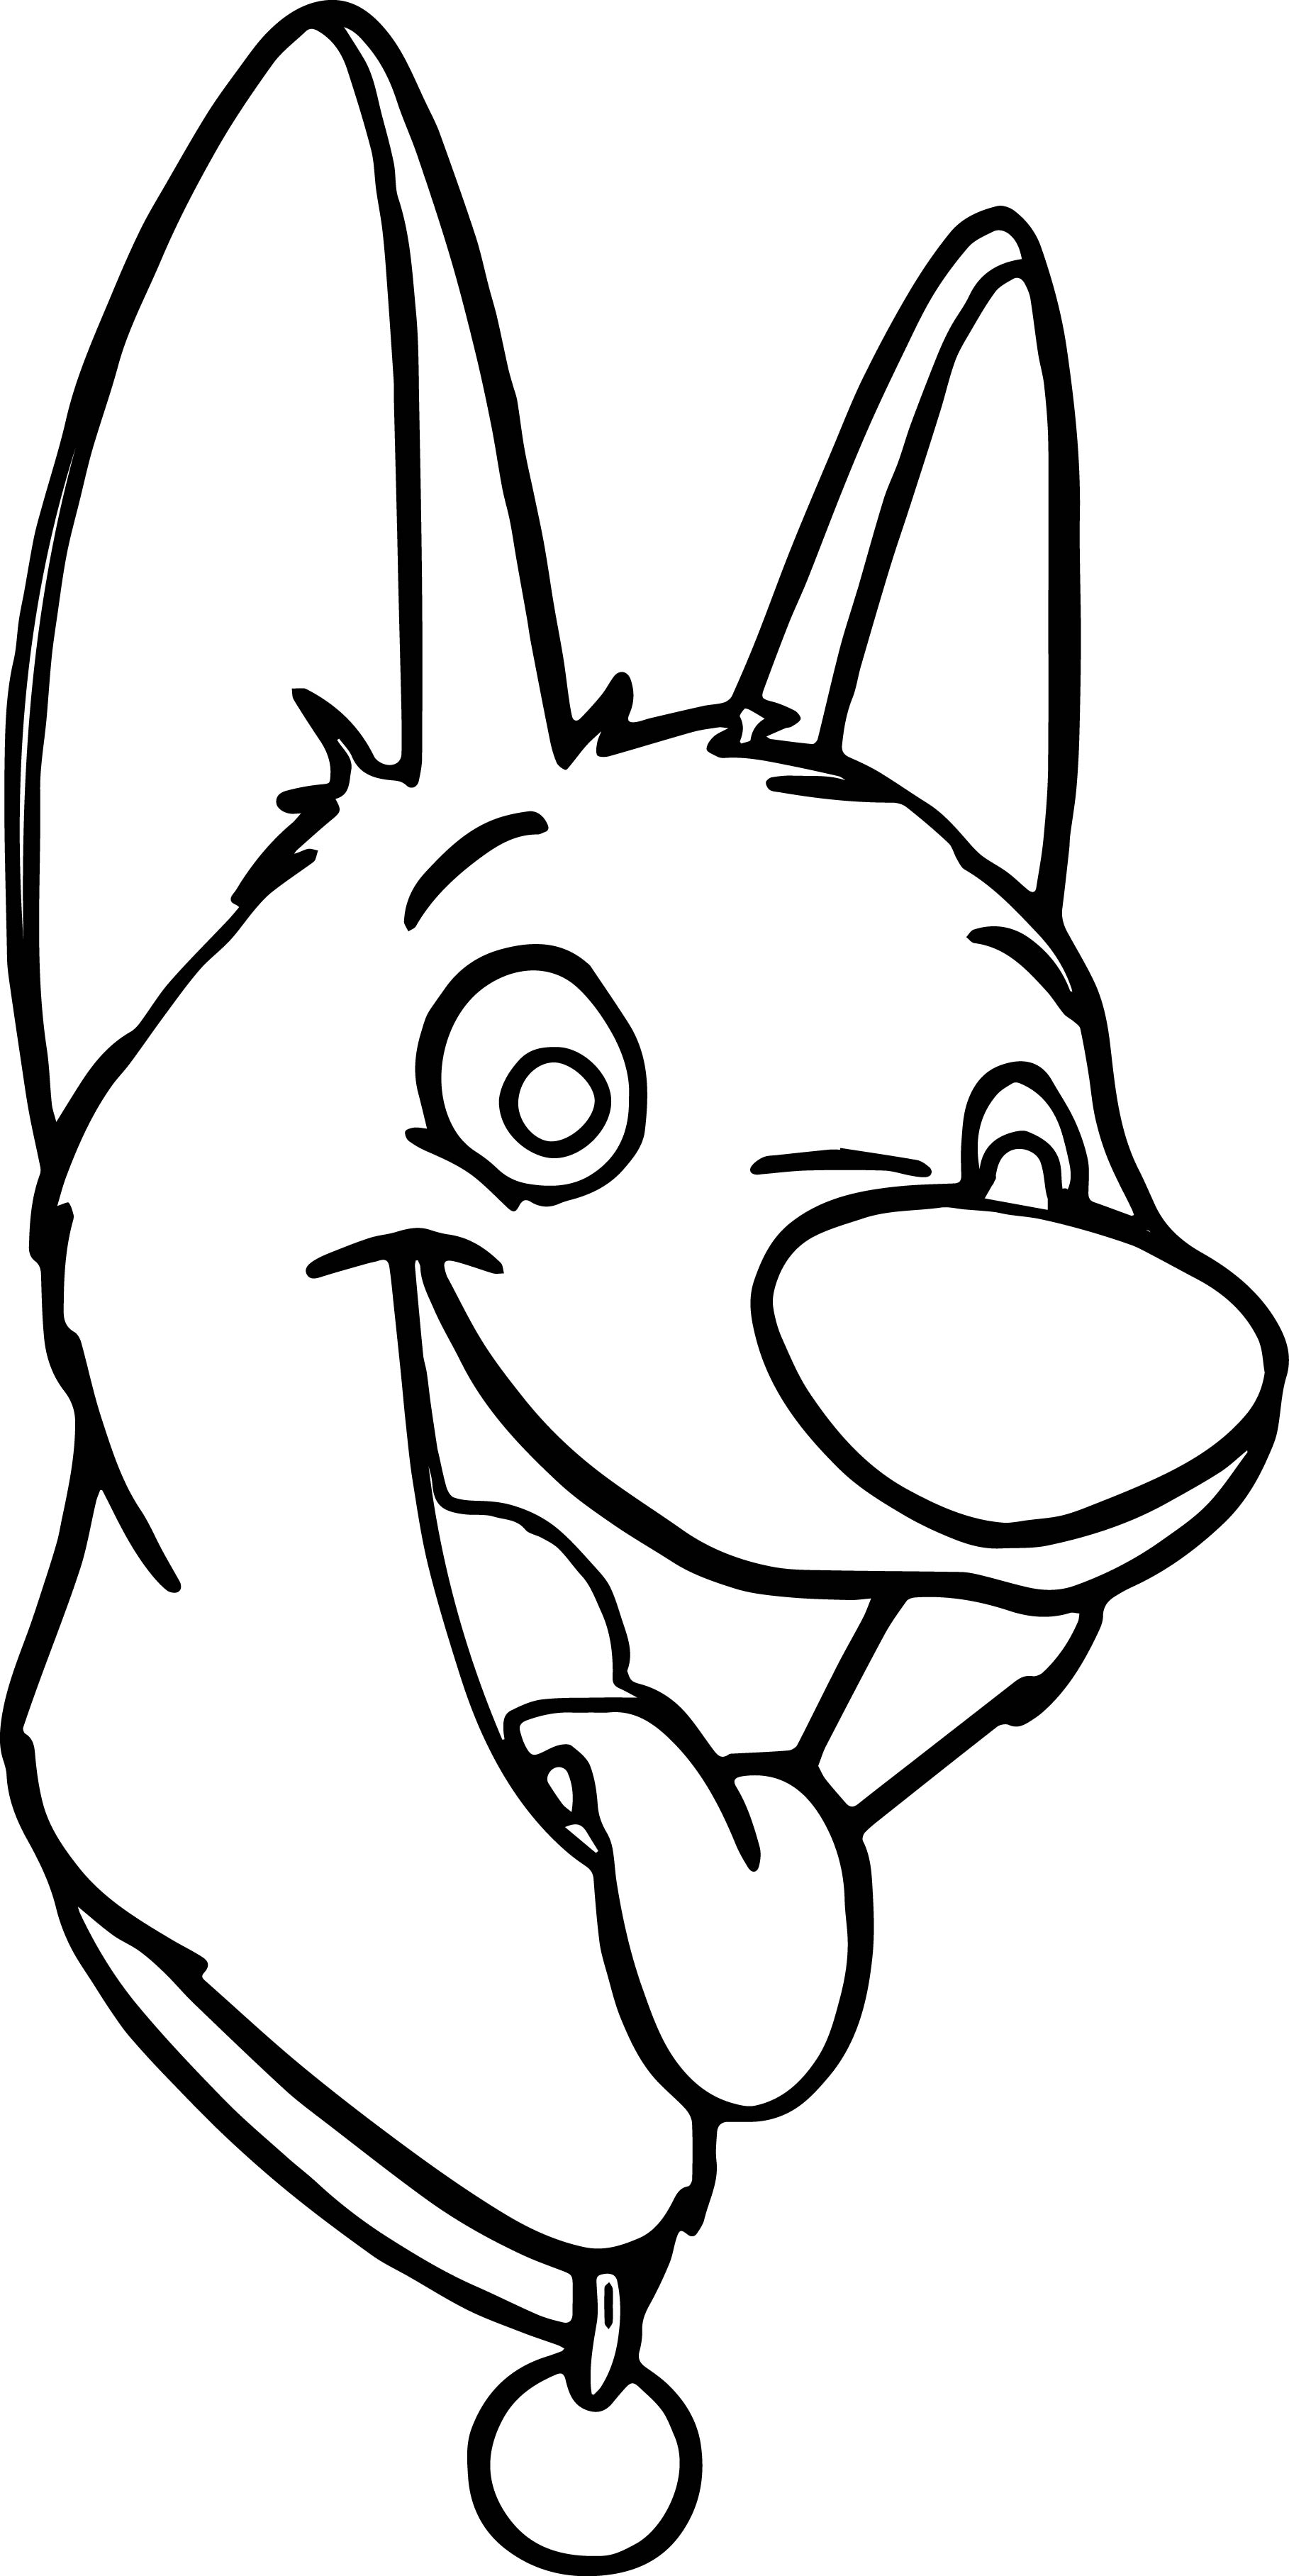 dog face coloring page bolt dog face coloring pages